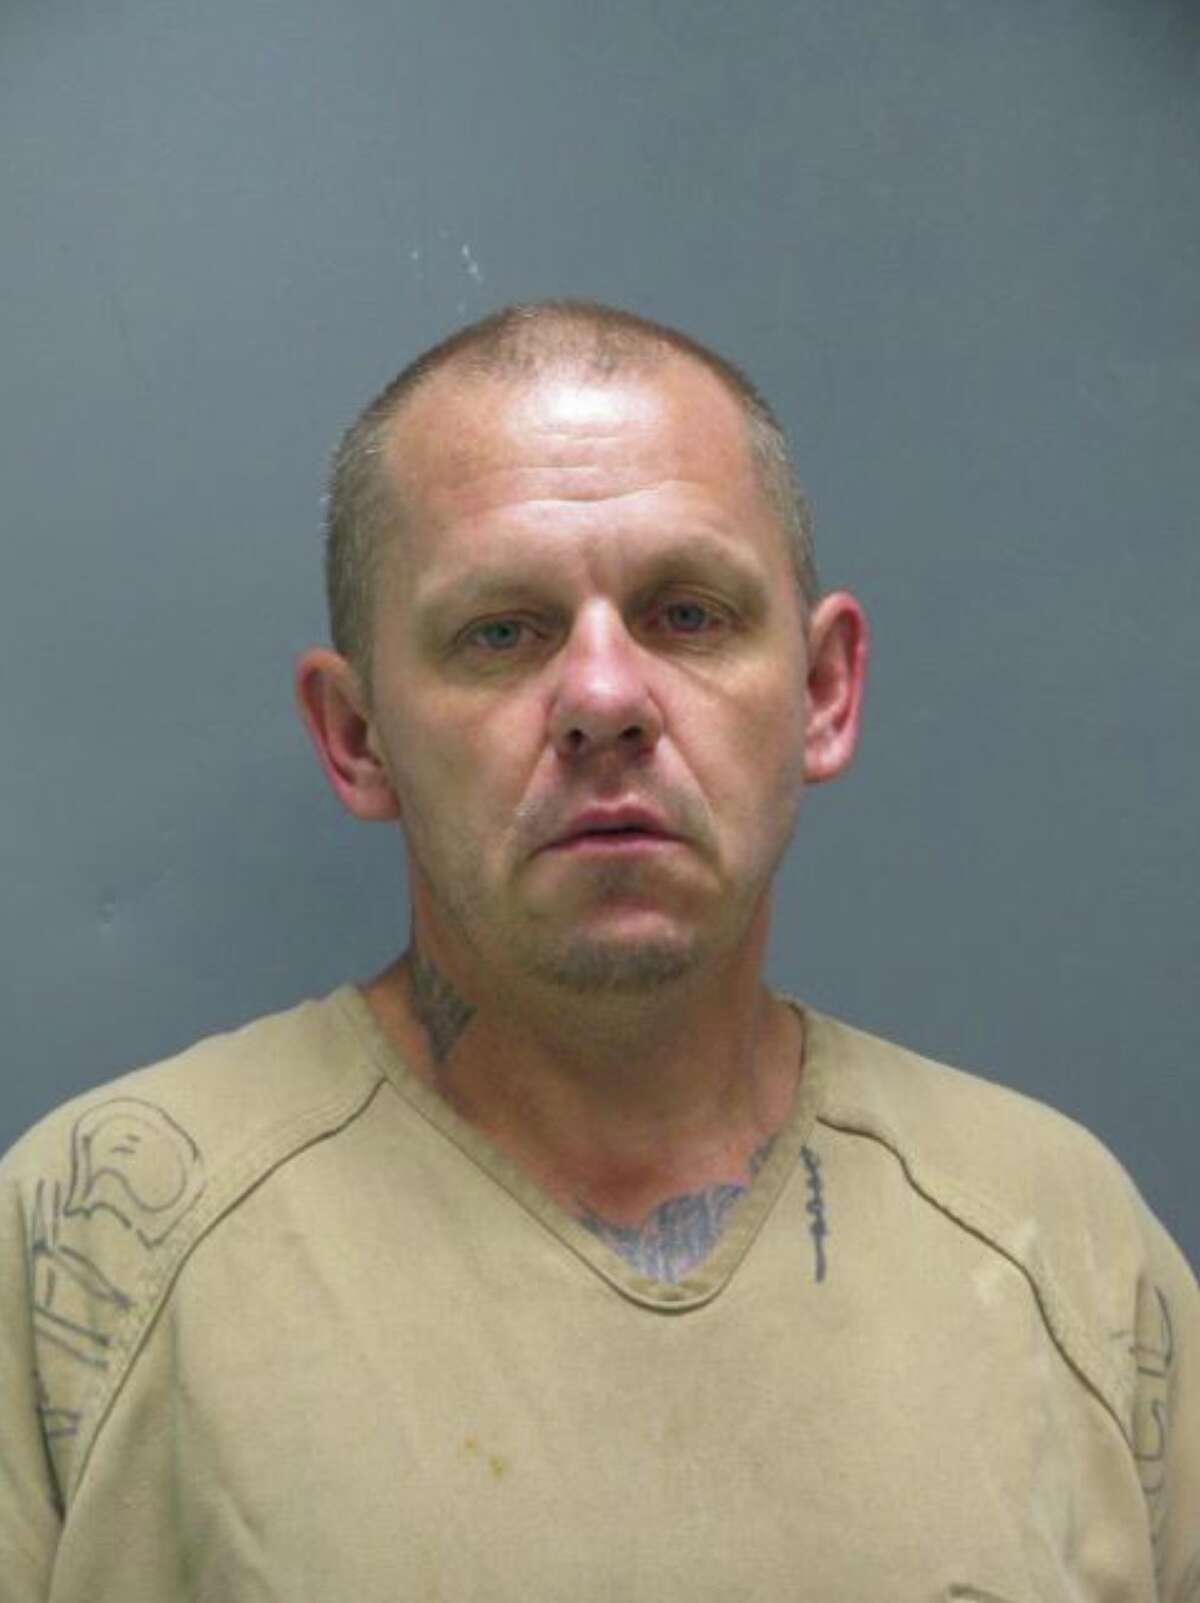 Clay Sterling Harvey, 44, escaped from the Liberty County Jail on Tuesday, Aug. 20, 2019.Anyone who spots the suspects is urged to not approach them and instead call 911 or the Multi-County Crime Stoppers at 1-800-392-STOP (7867).